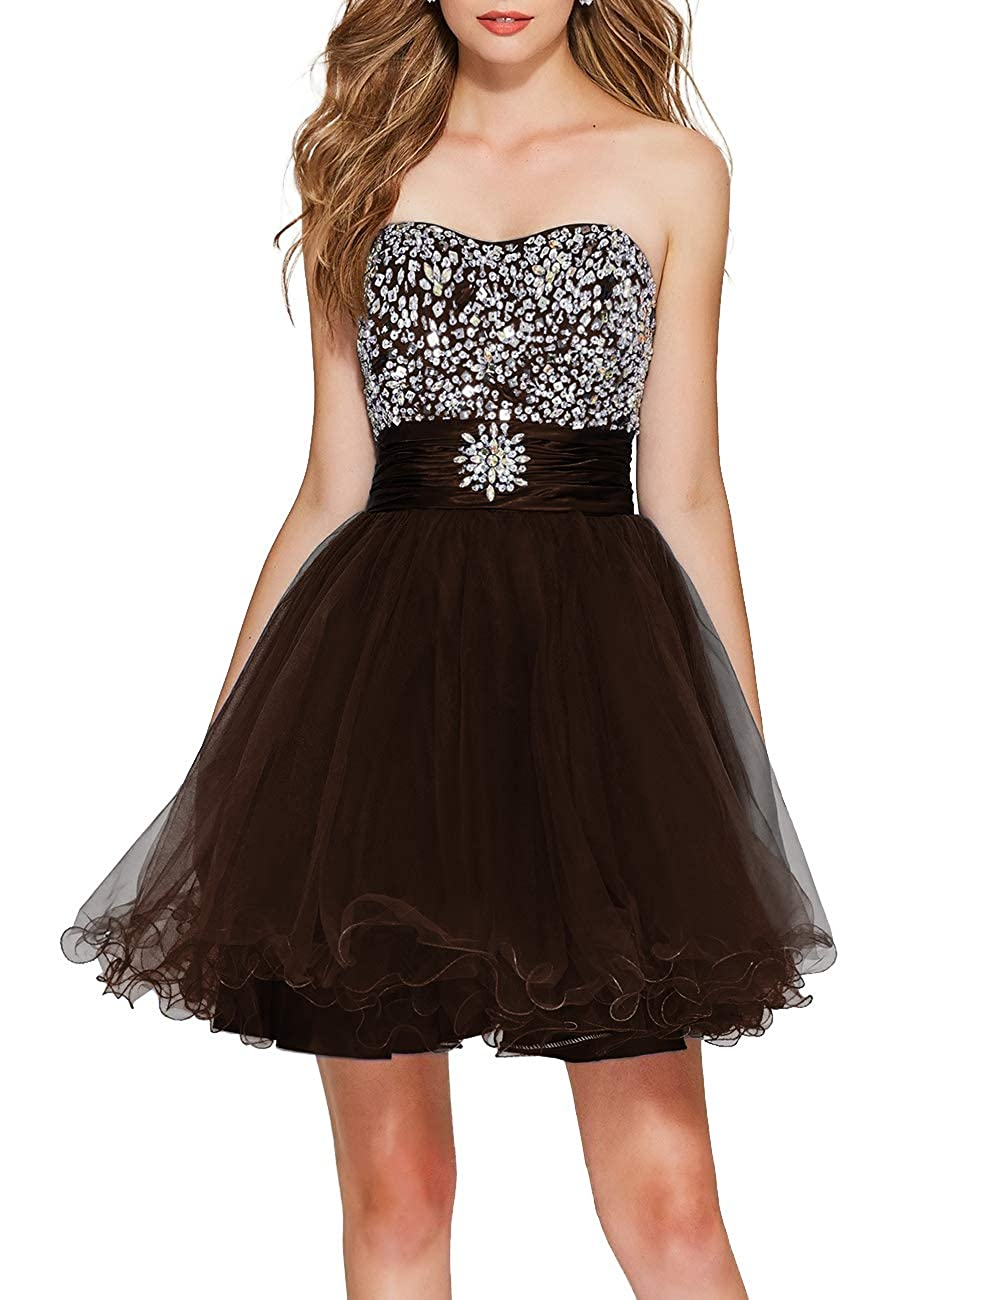 Chocolate Uther Girls Sweetheart Bridesmaid Dresses Beaded Homecoming Dress Short Prom Gown